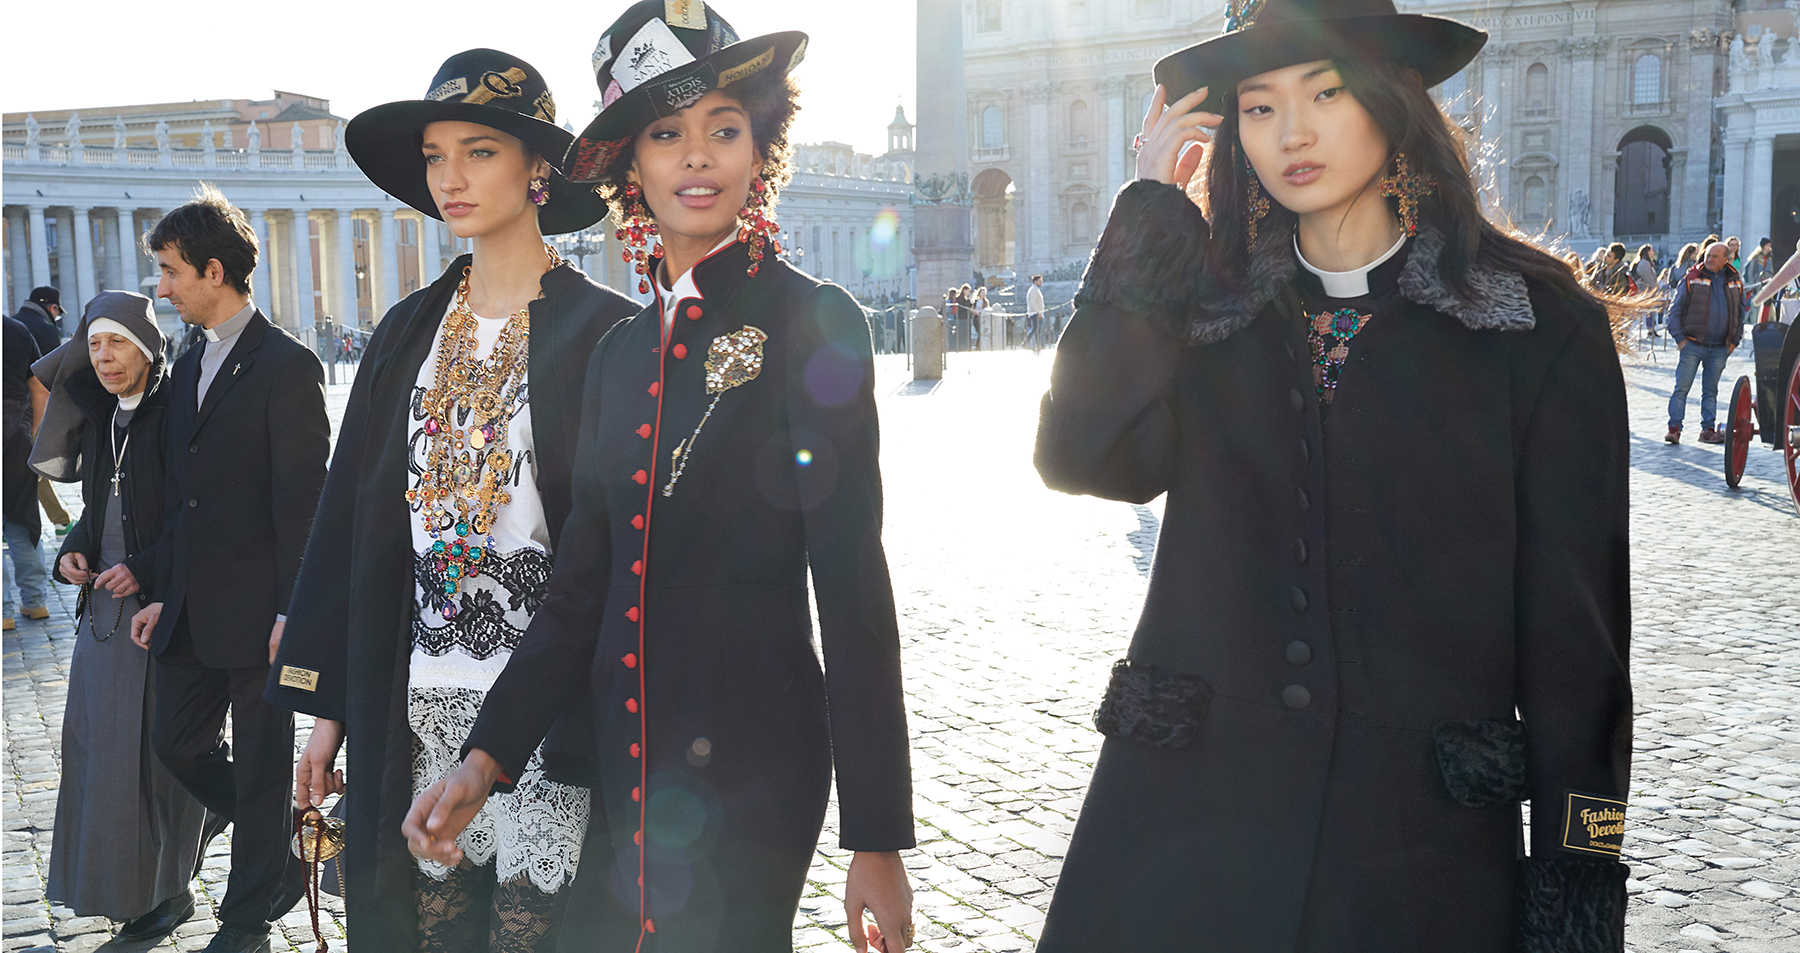 Dolce & Gabbana Fall 2018 Ad Campaign by Luca & Alessandro Morelli